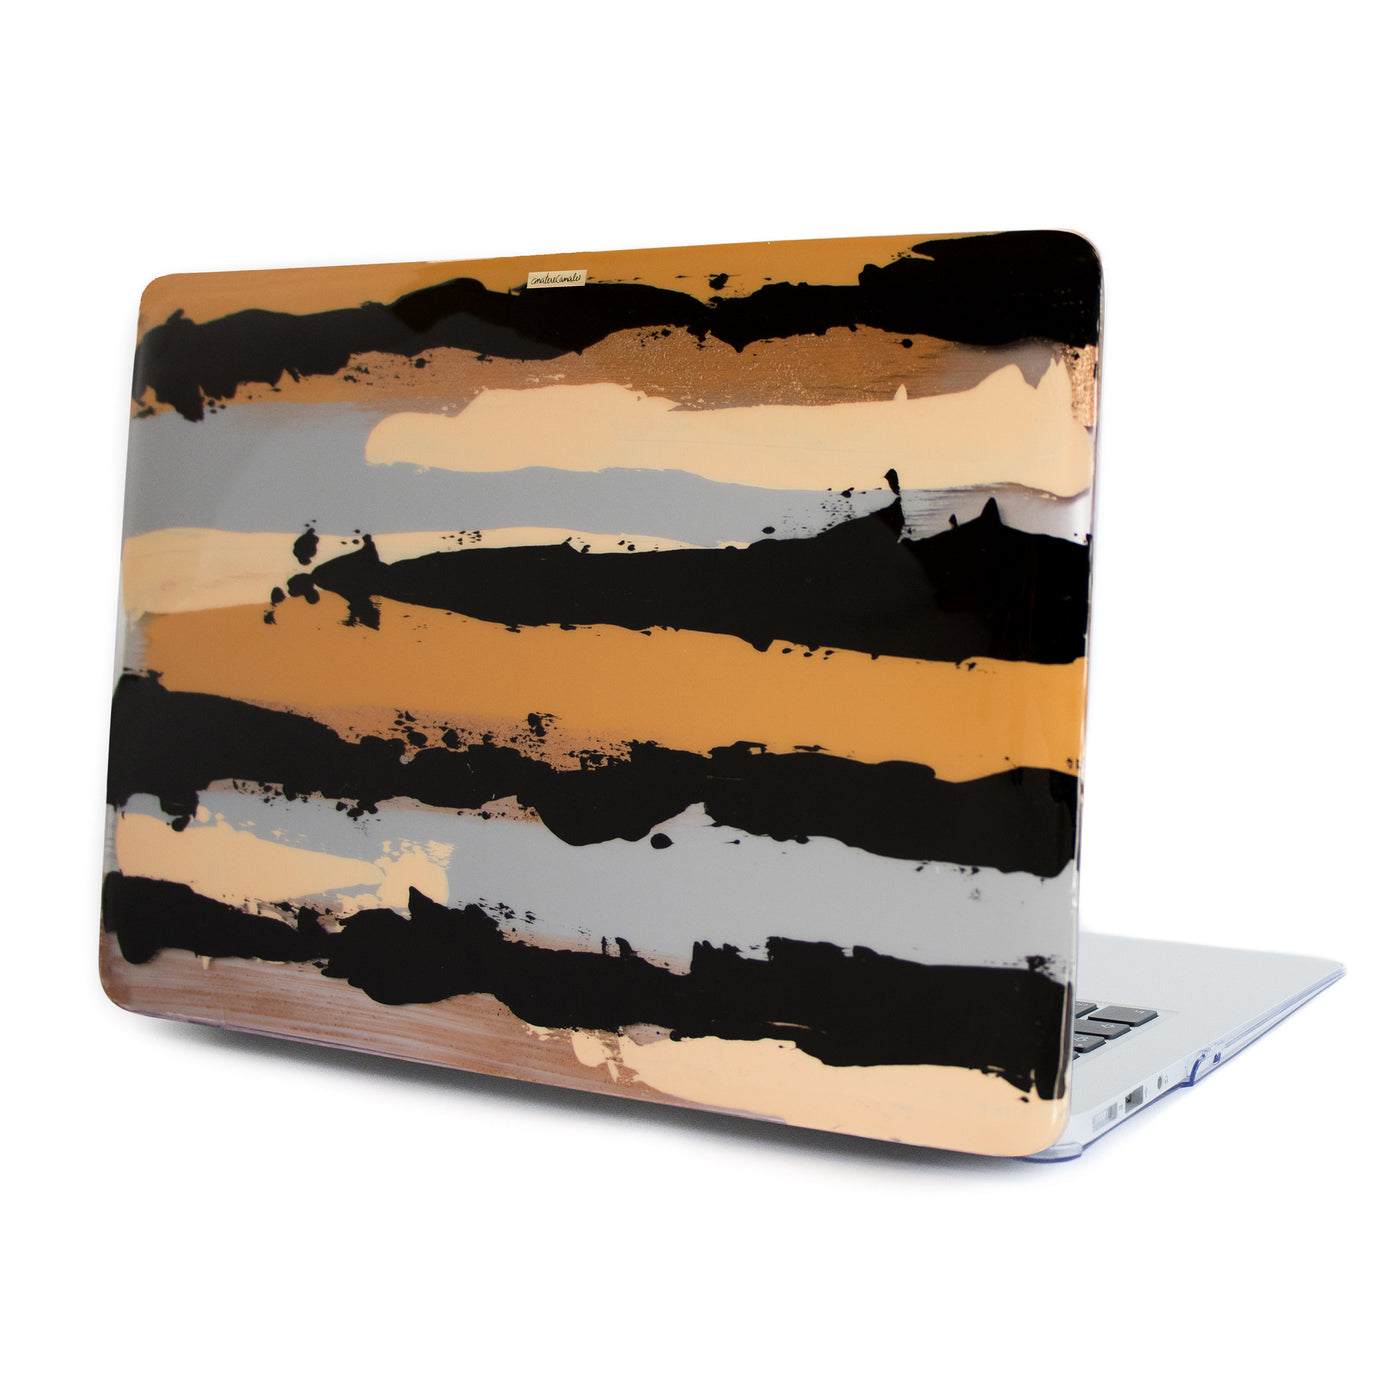 Golden Sepia Swing Macbook Case - Ana Tere Canales